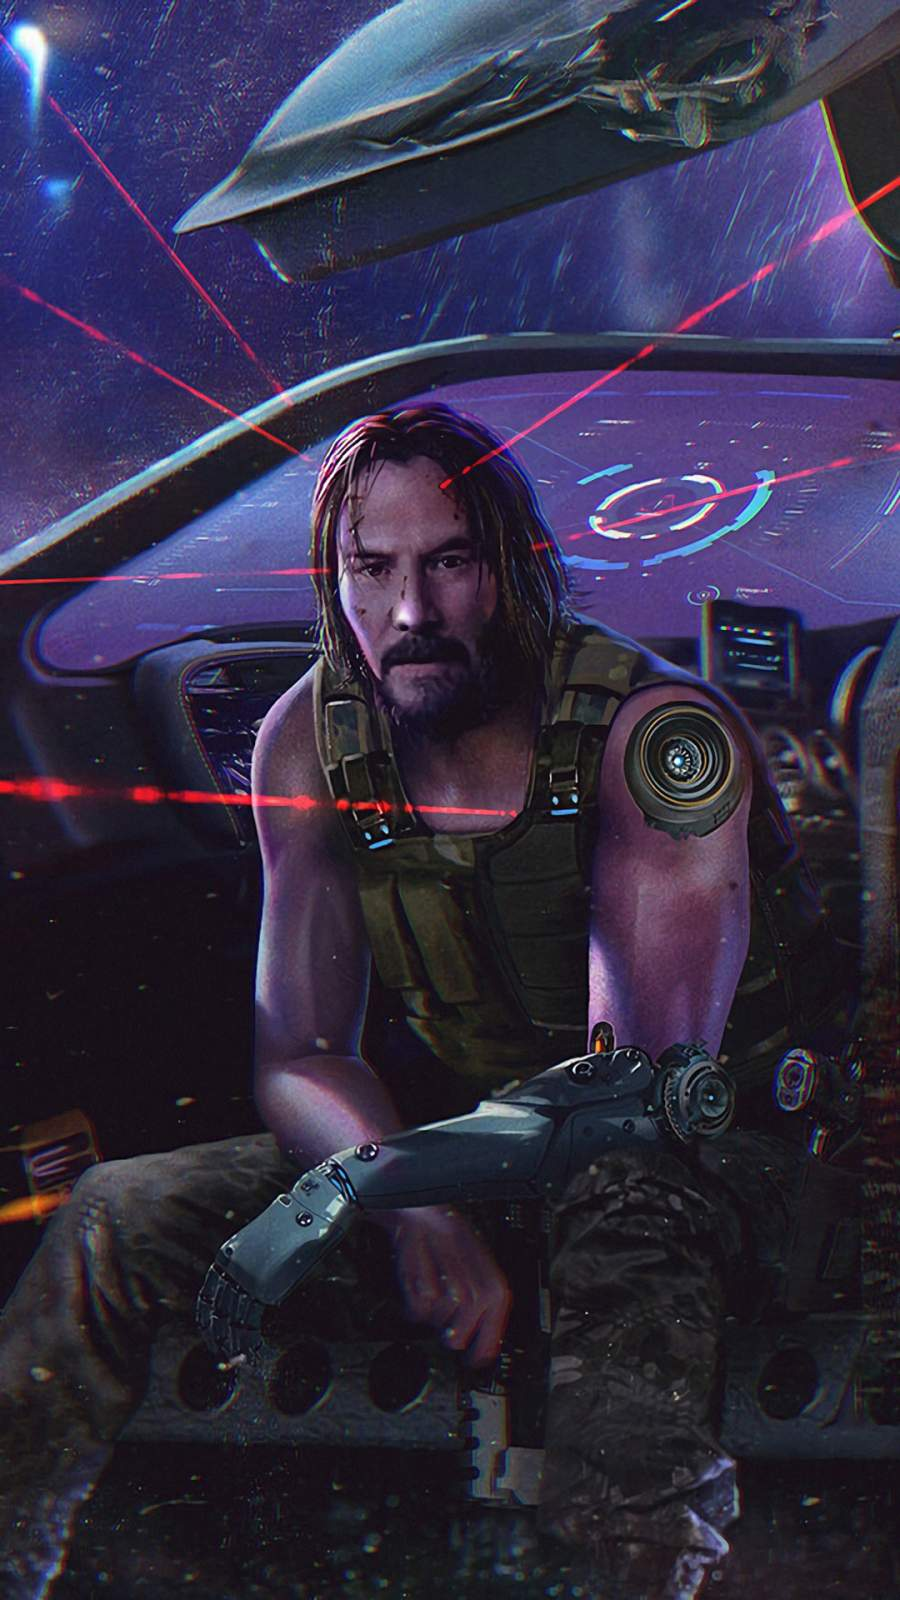 Keanu Reeves Cyberpunk iPhone Wallpaper 1